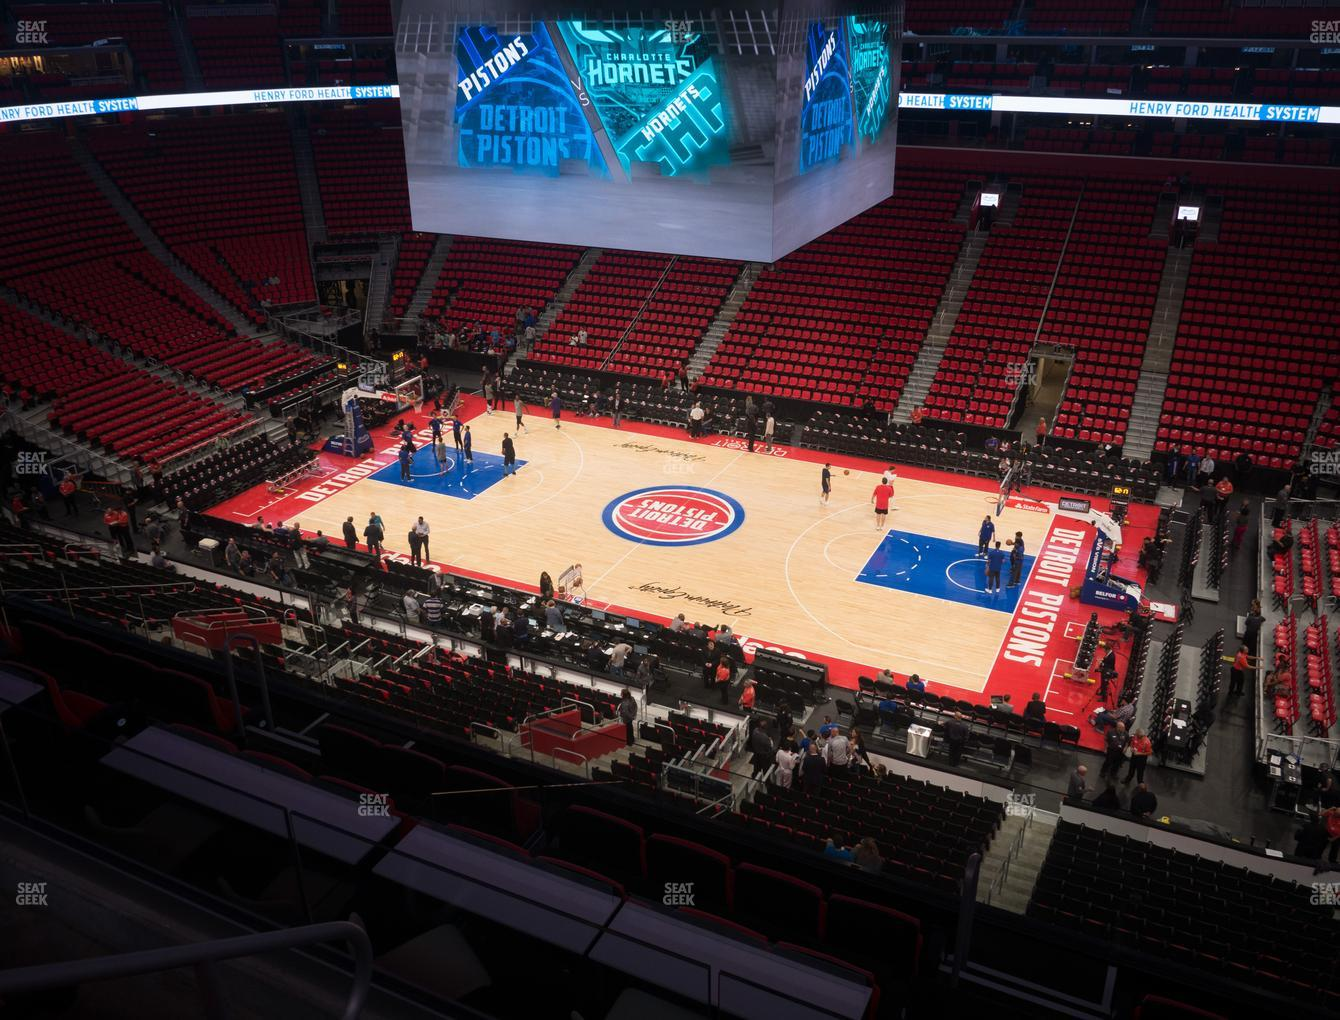 Detroit Pistons at Little Caesars Arena Drink Rail Mezzanine 25 View